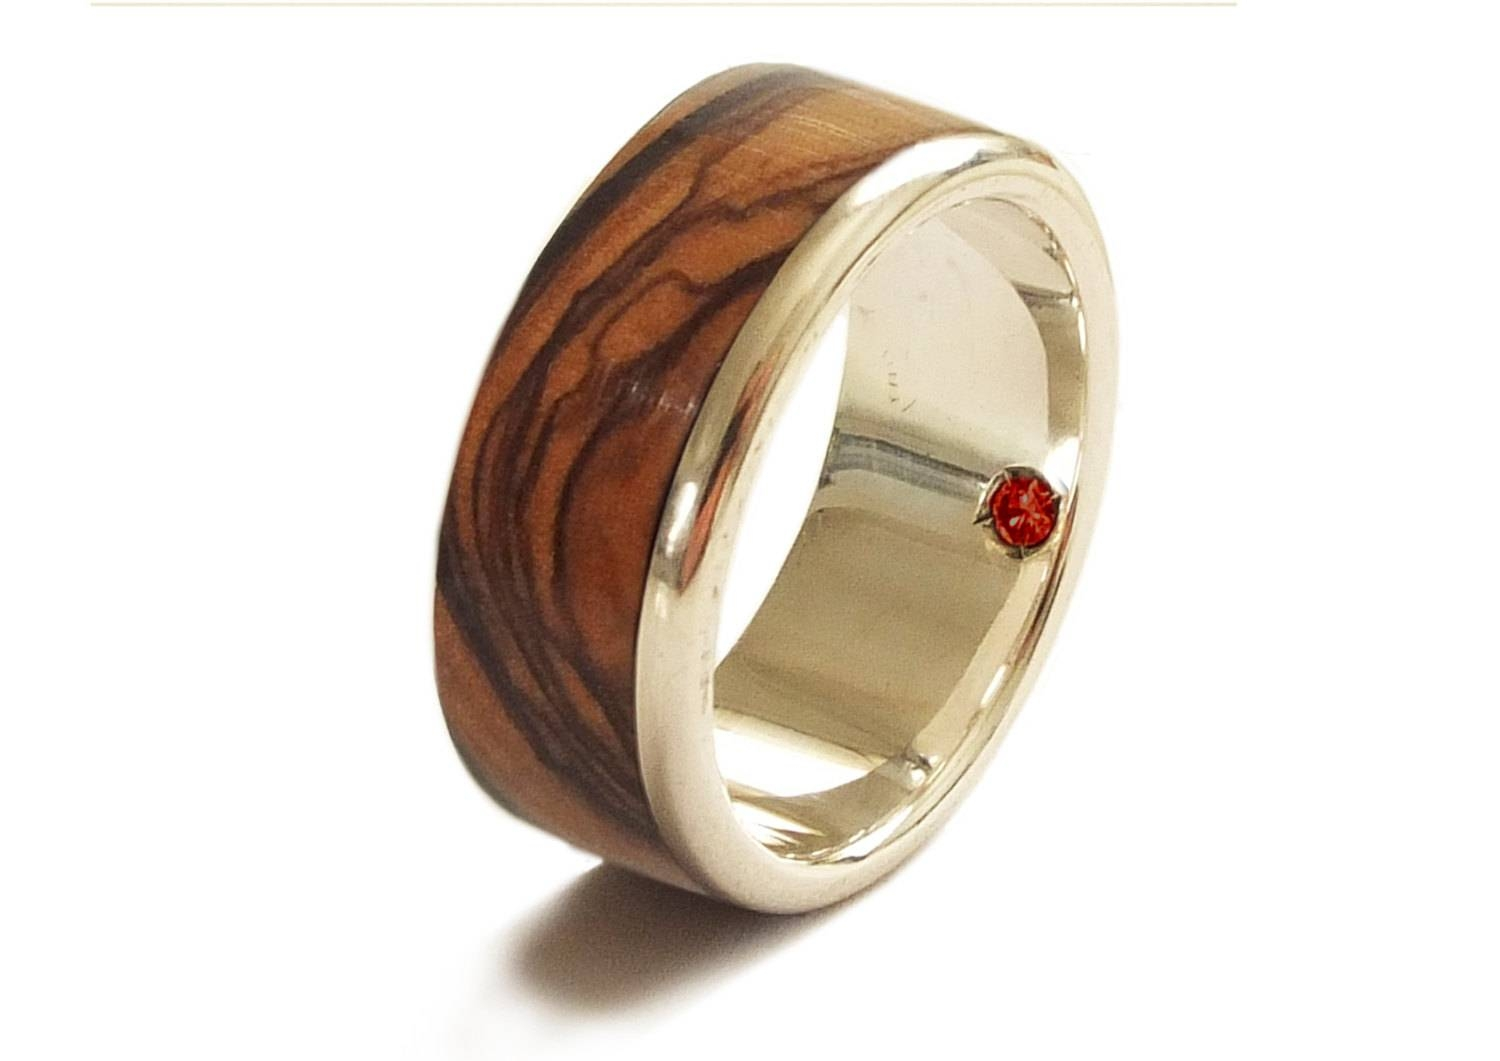 Olive Wood Ring In Sterling Silver And Garnet Wedding Band Throughout Men's Garnet Wedding Bands (View 6 of 15)